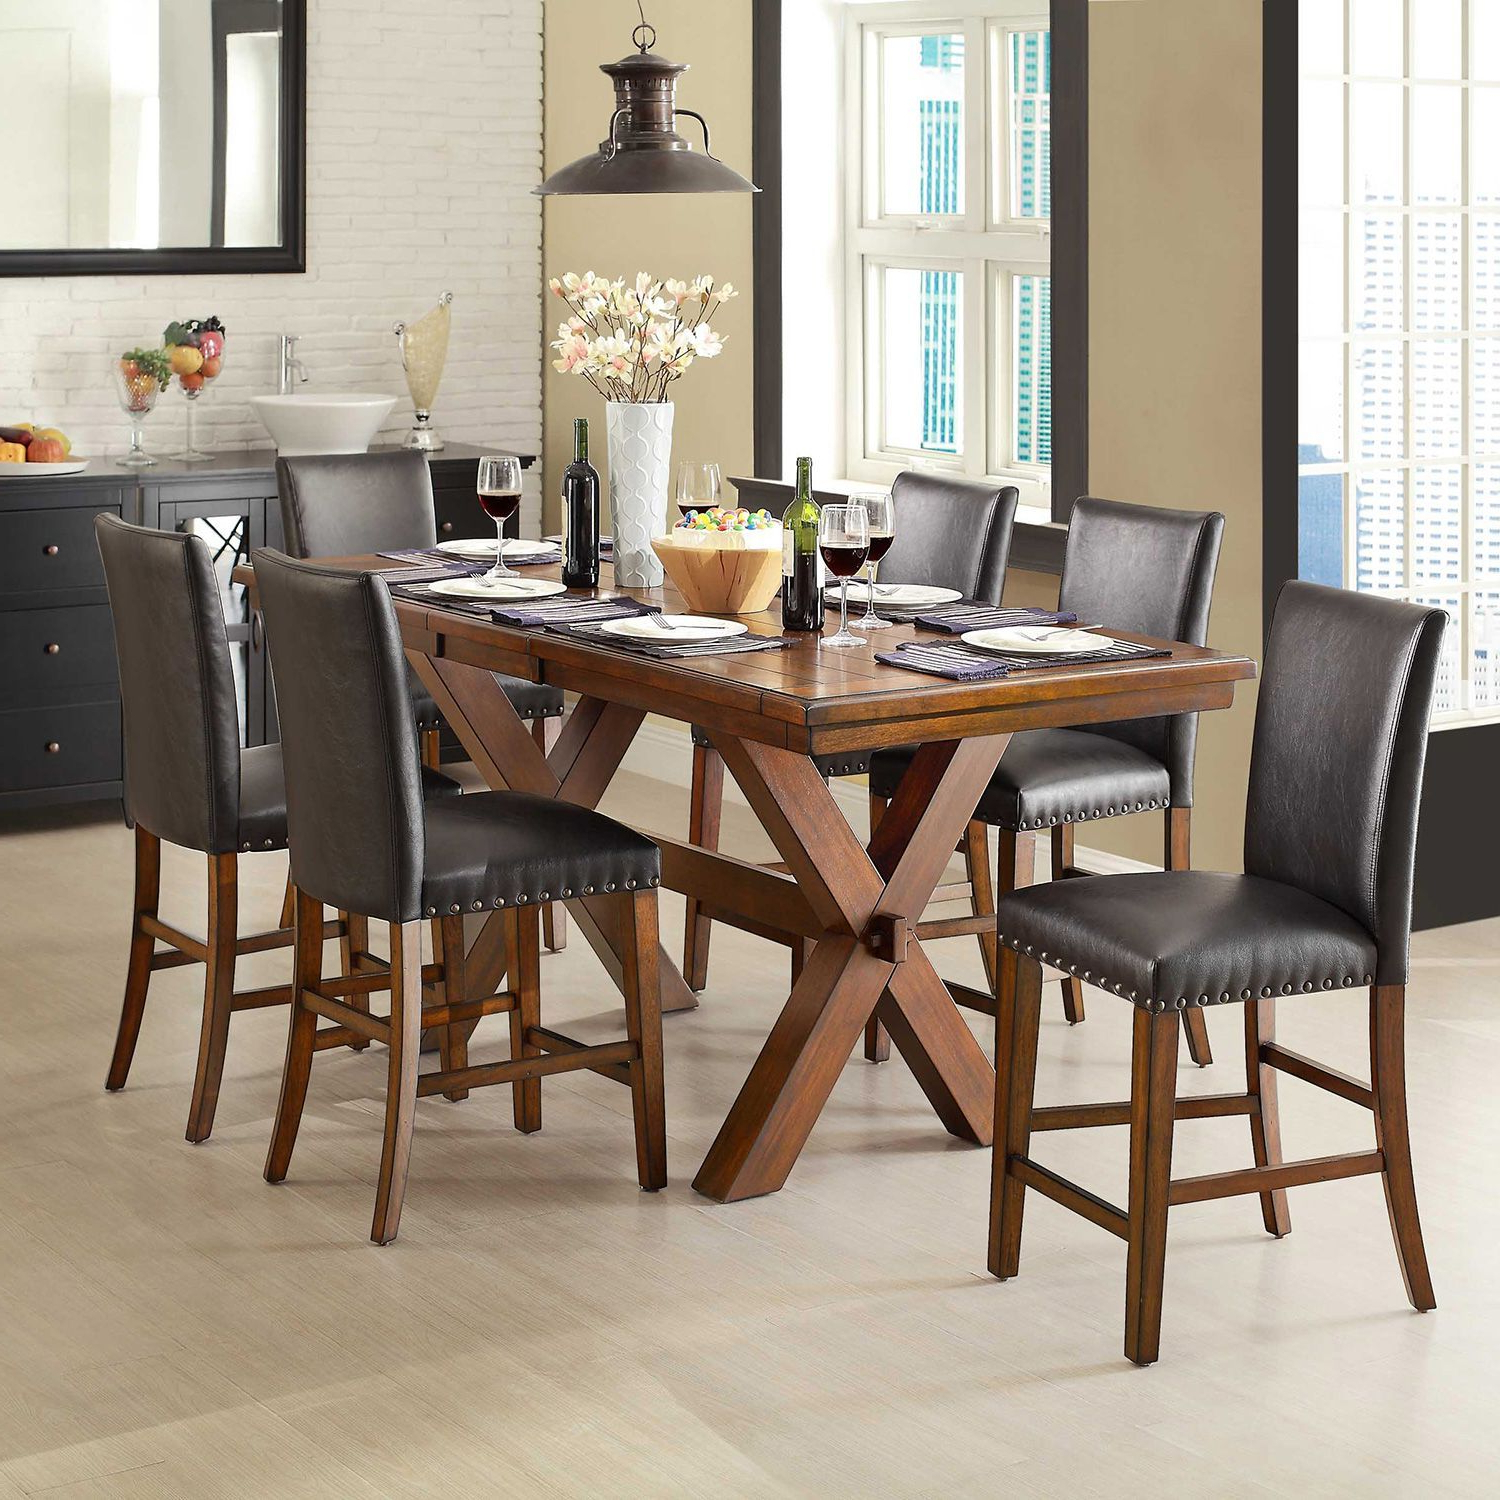 Dining Intended For Winsted 4 Piece Counter Height Dining Sets (View 6 of 25)